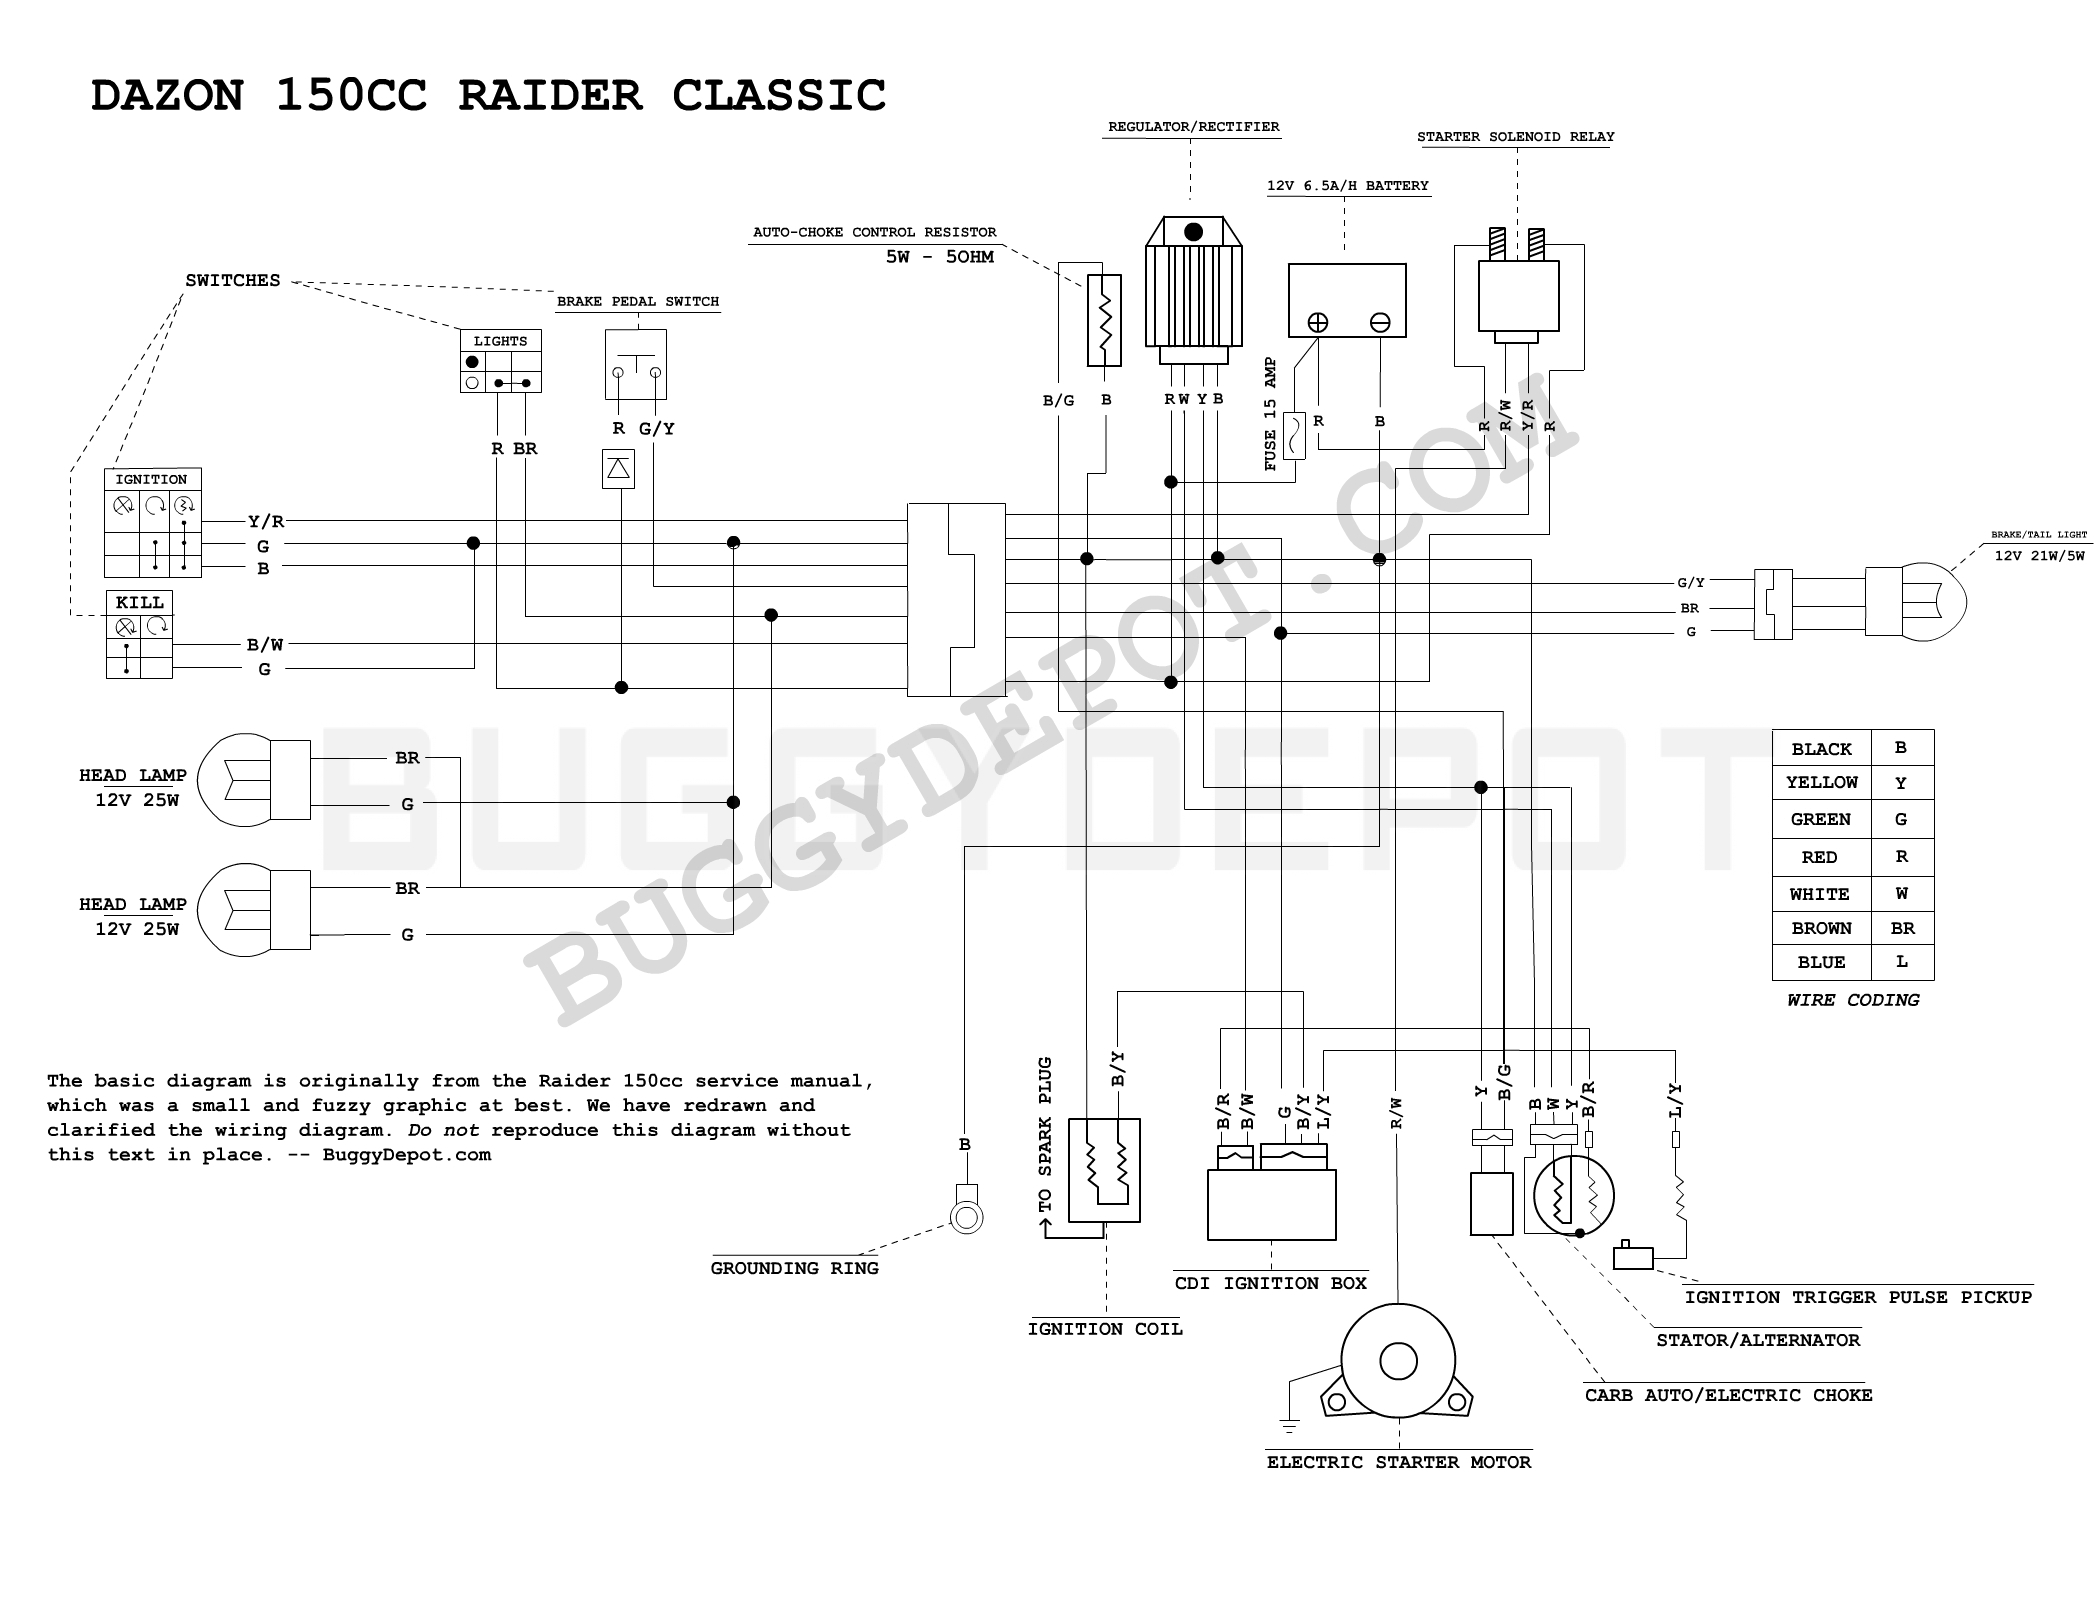 Rks Wiring Diagram Schemes 2003 Ram 2500 Hecho Crossfire 150r Buggy Depot Technical Center Rh Buggydepot Com 3 Way Switch